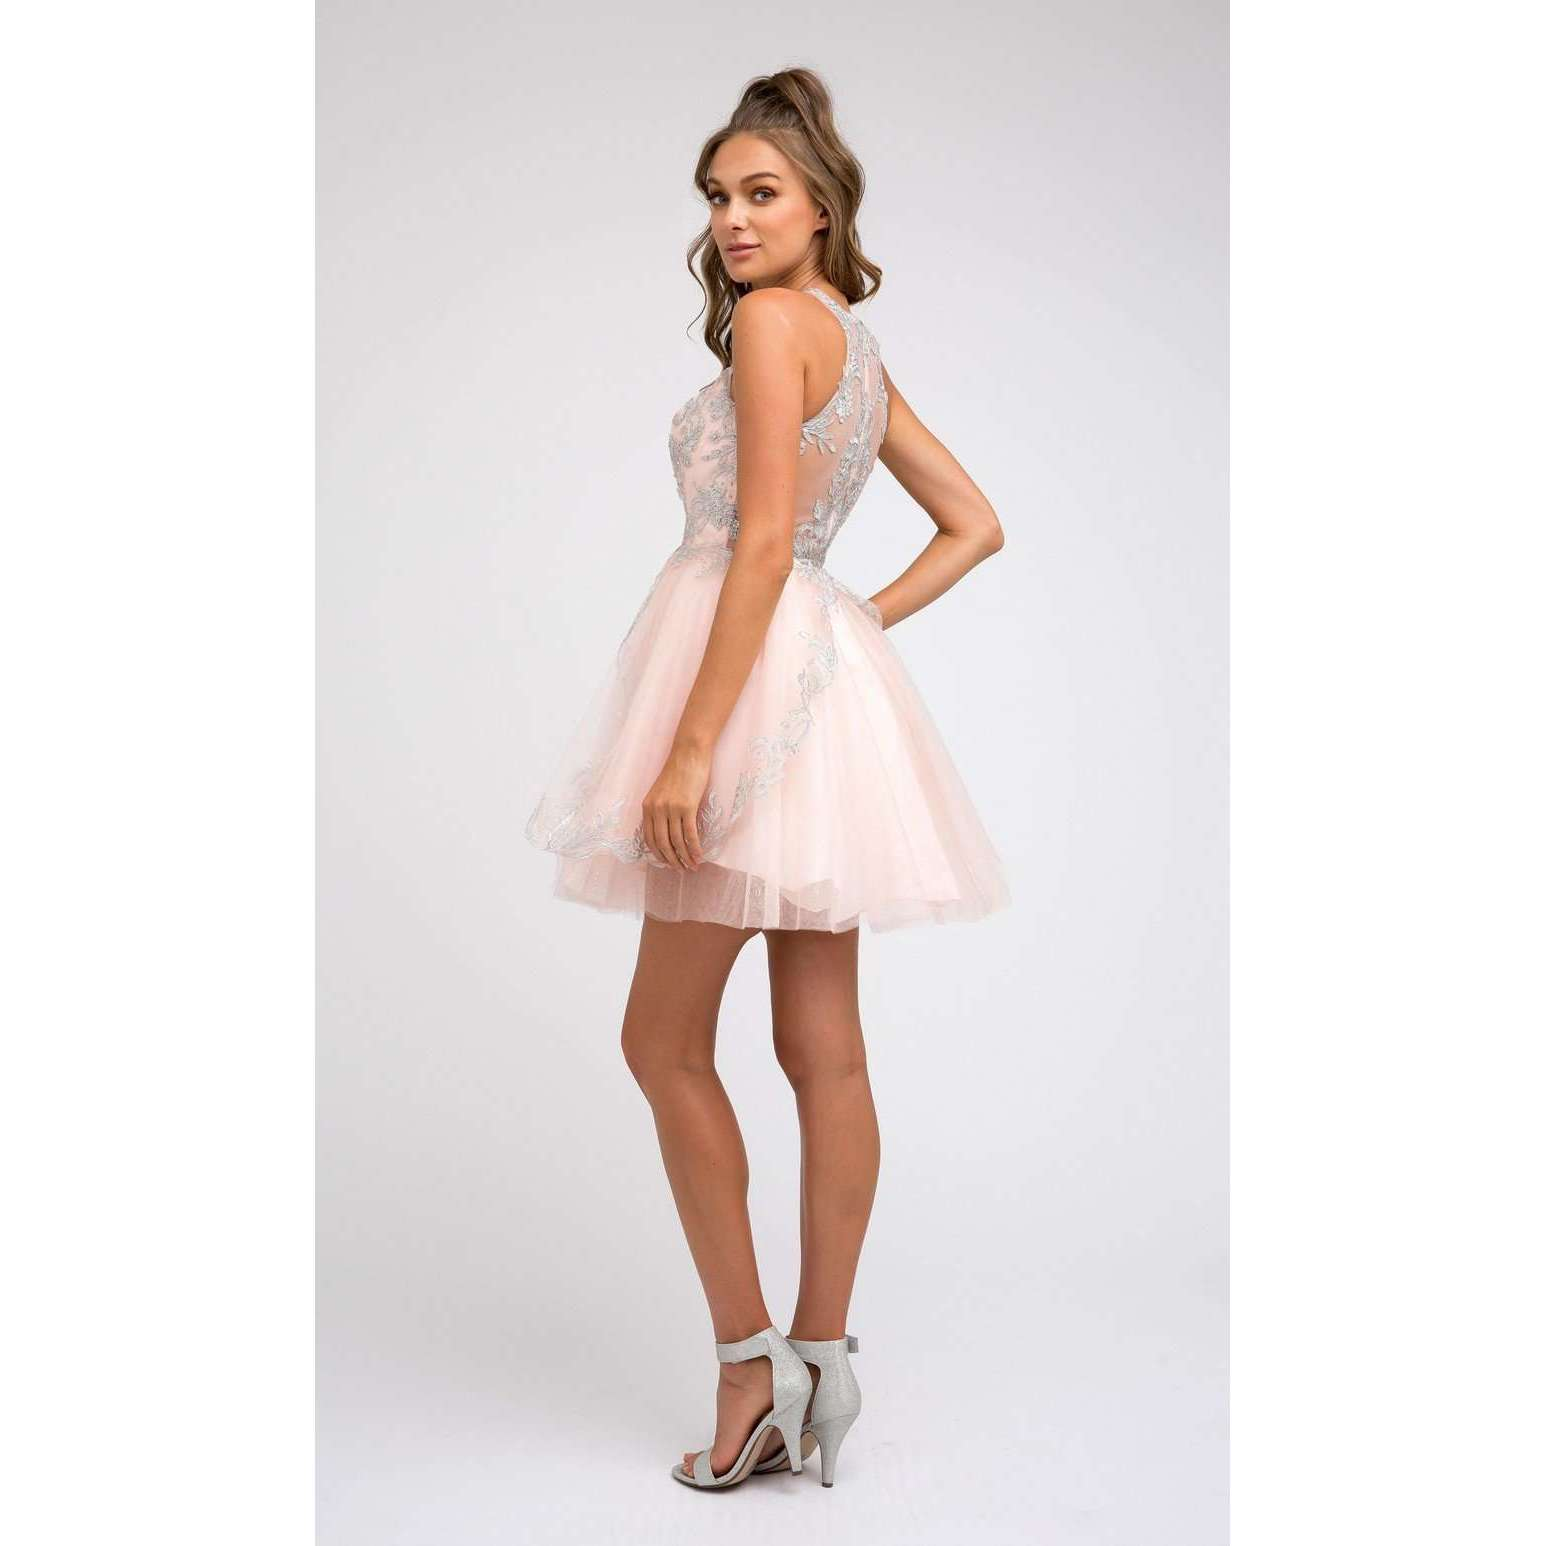 Embroidered Bodice Glitter Mesh Hoco Short Dress 847 - Julietdresses